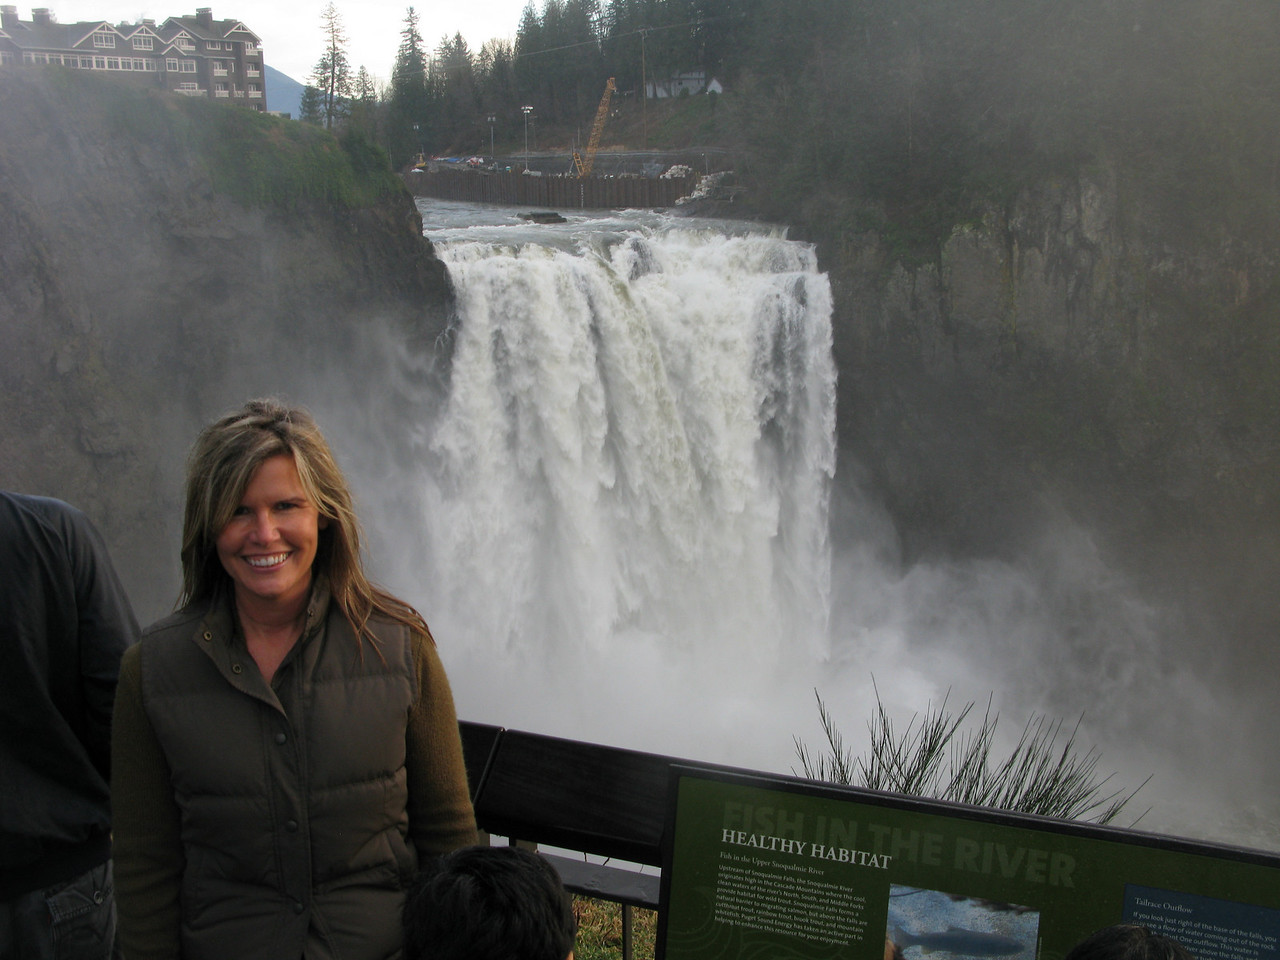 Snoqualmie Falls, Lisa moist from spray. High water from heavey rains Jan 2011